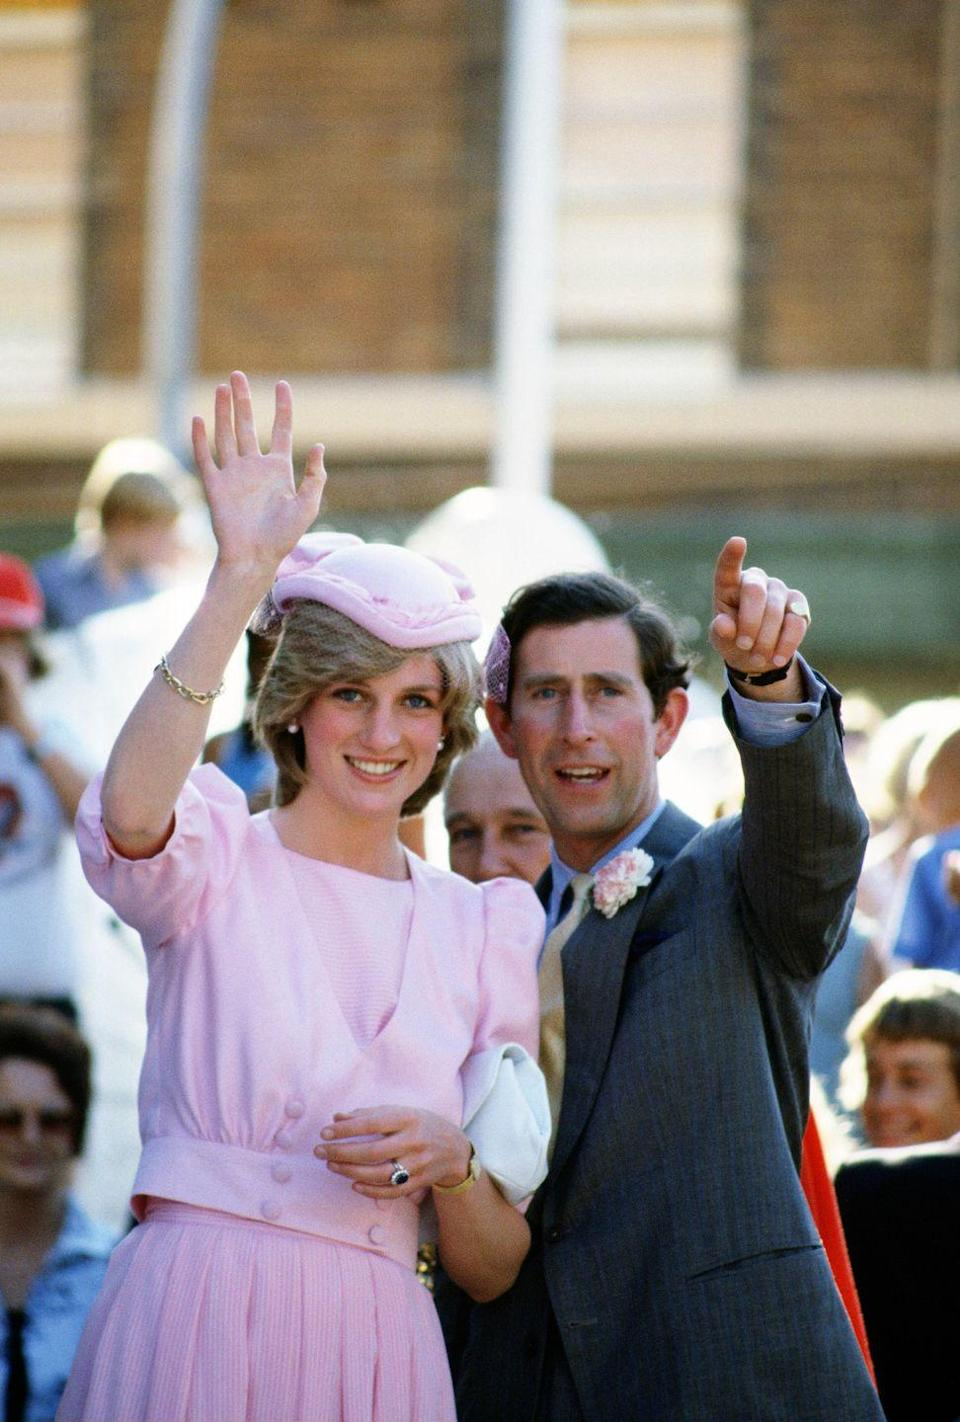 <p>Diana and Charles were greeted by huge crowds throughout their tour—and though <em>The Crown</em> made it seem like Charles was super jealous, he seems pretty chill here. Also plz note that his carnation perfectly matches Diana's dress. Cute.</p>